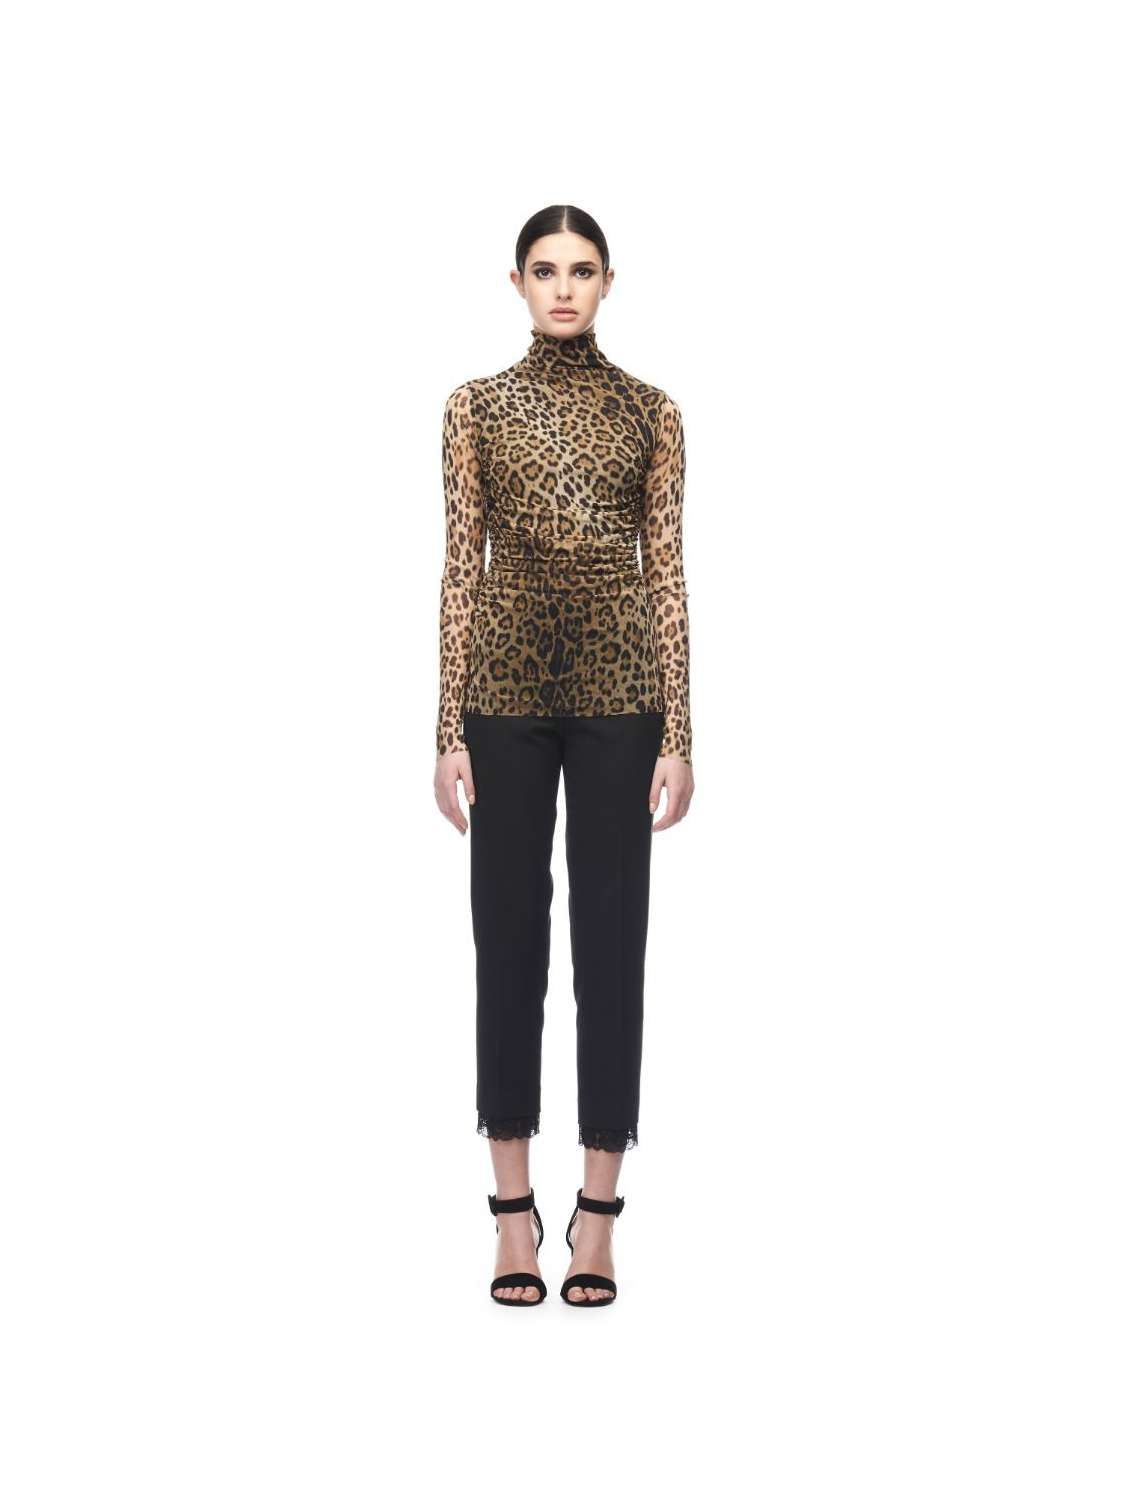 Turtleneck animal print top